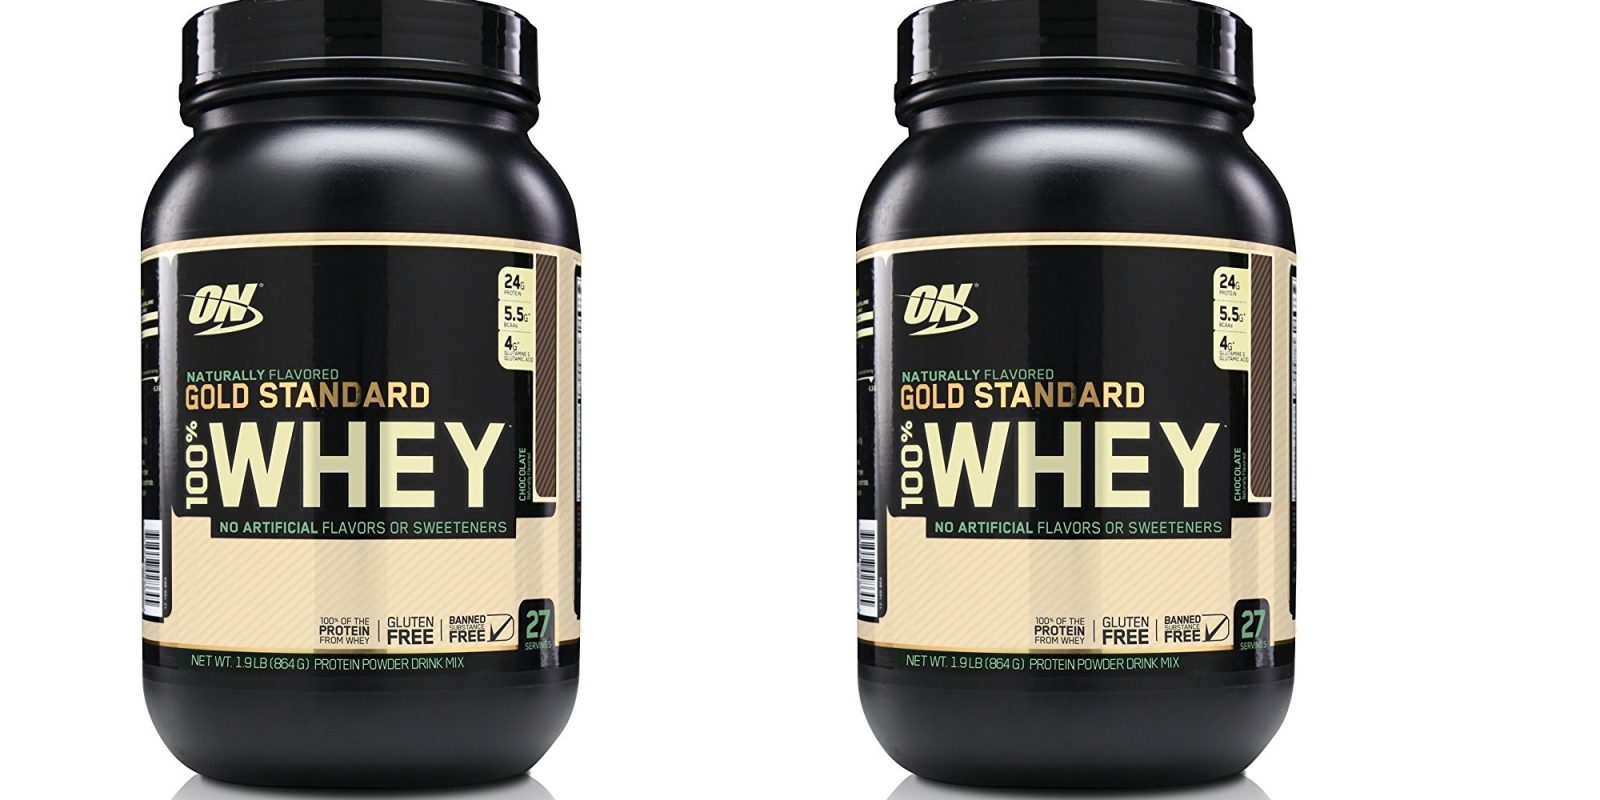 Harga Jual Optimum Nutrition Whey Gold Chocolate Terbaru 2018 Tas Wanita Aigner Munich Label 2in1 Smooth Leather Like Ori Hardware 2904 1 Pds Save Big On Sports Powders At Amazon Protein For 20 More